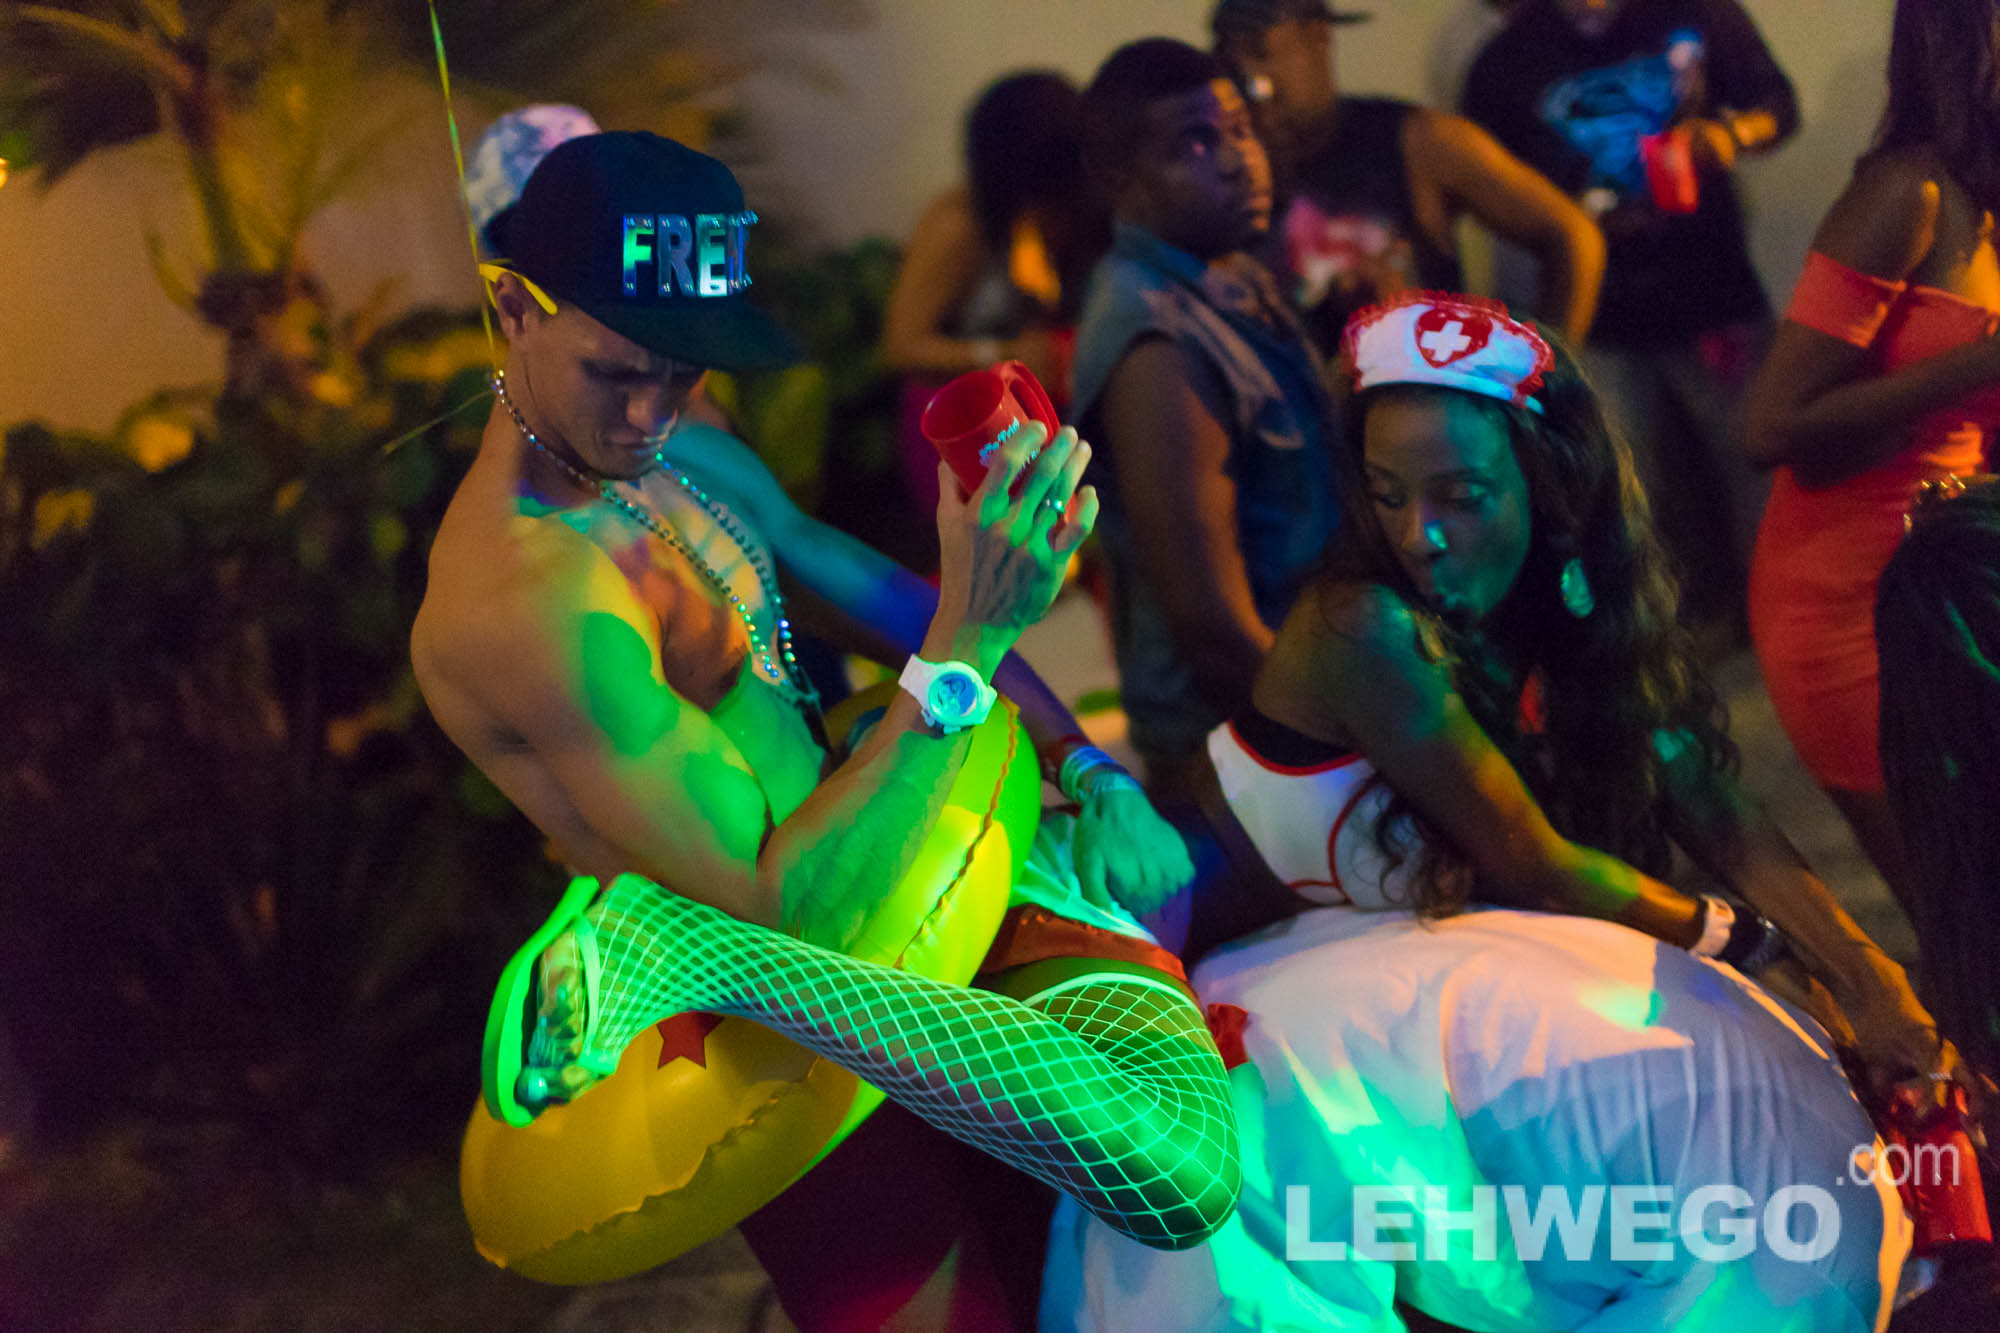 The LEHWEGO recommended fete list for Trinidad carnival 2015